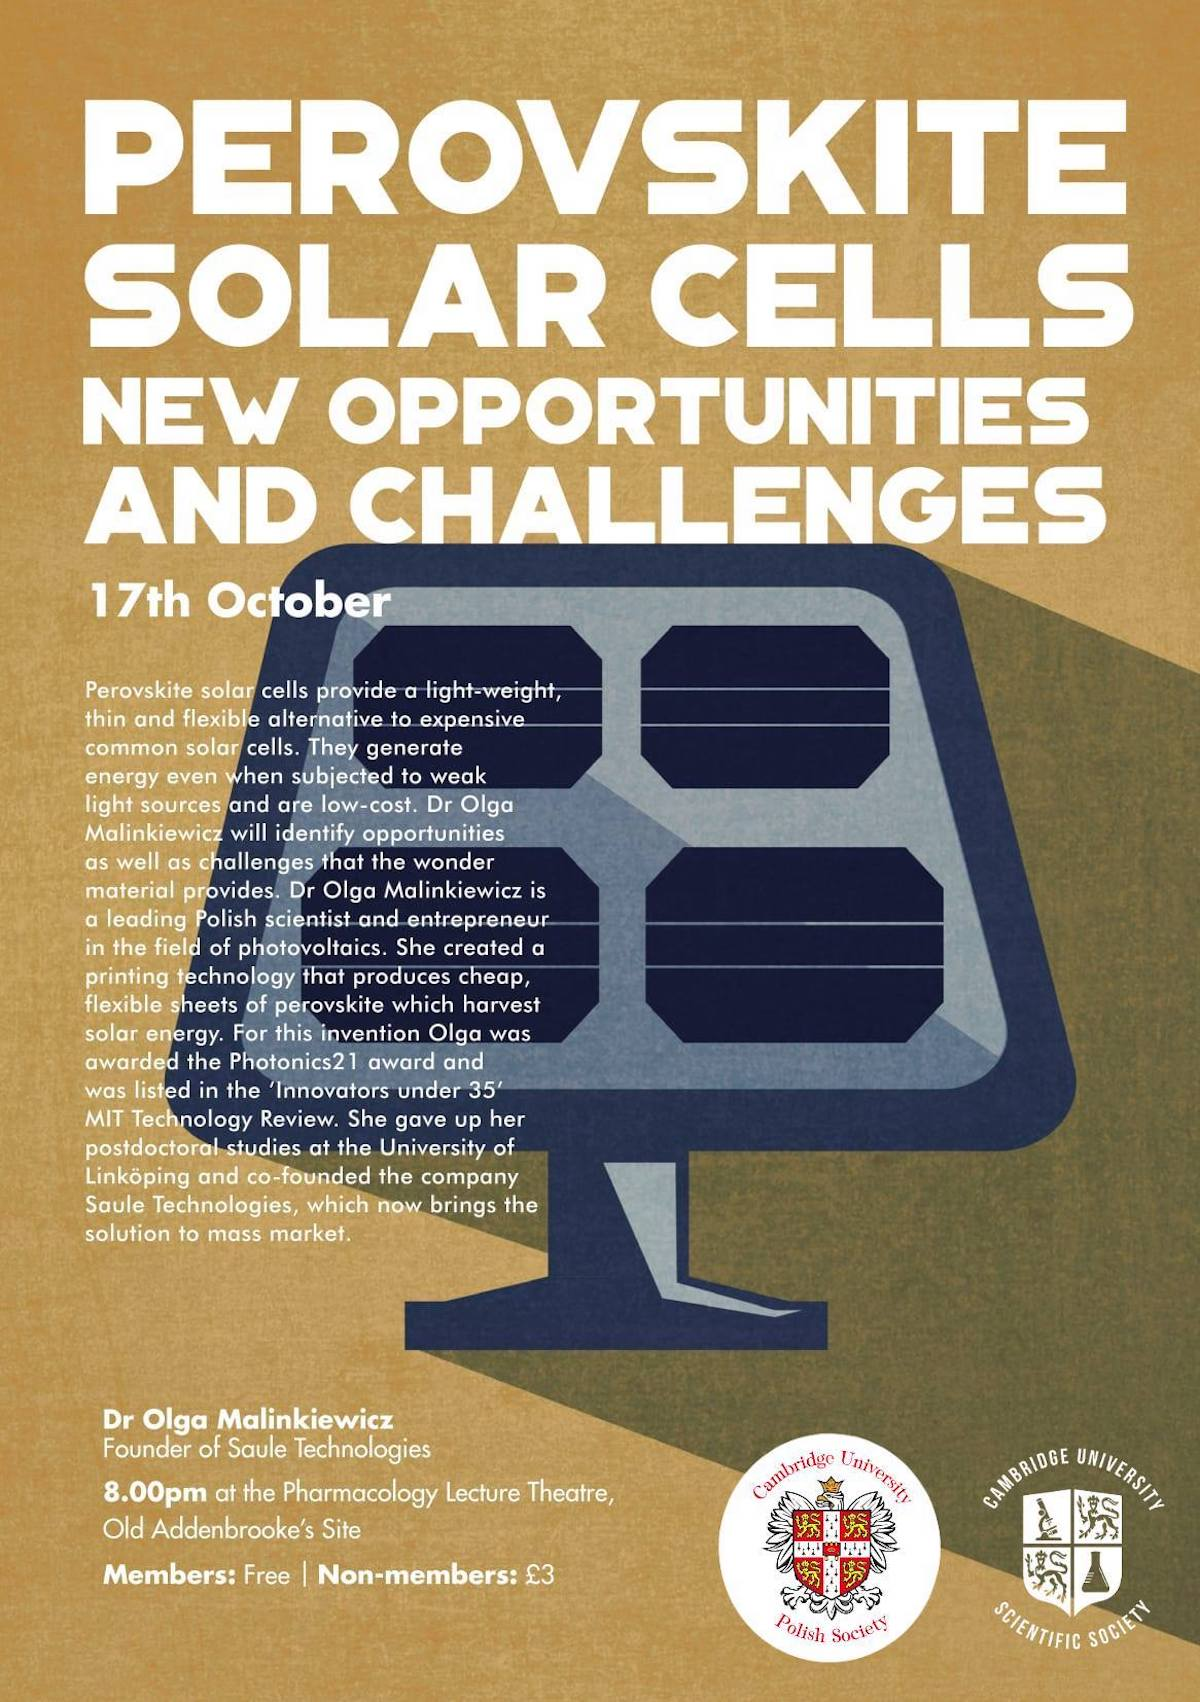 Perovskite solar cells - a lecture by Olga Malinkiewicz at the Cambridge Univeristy